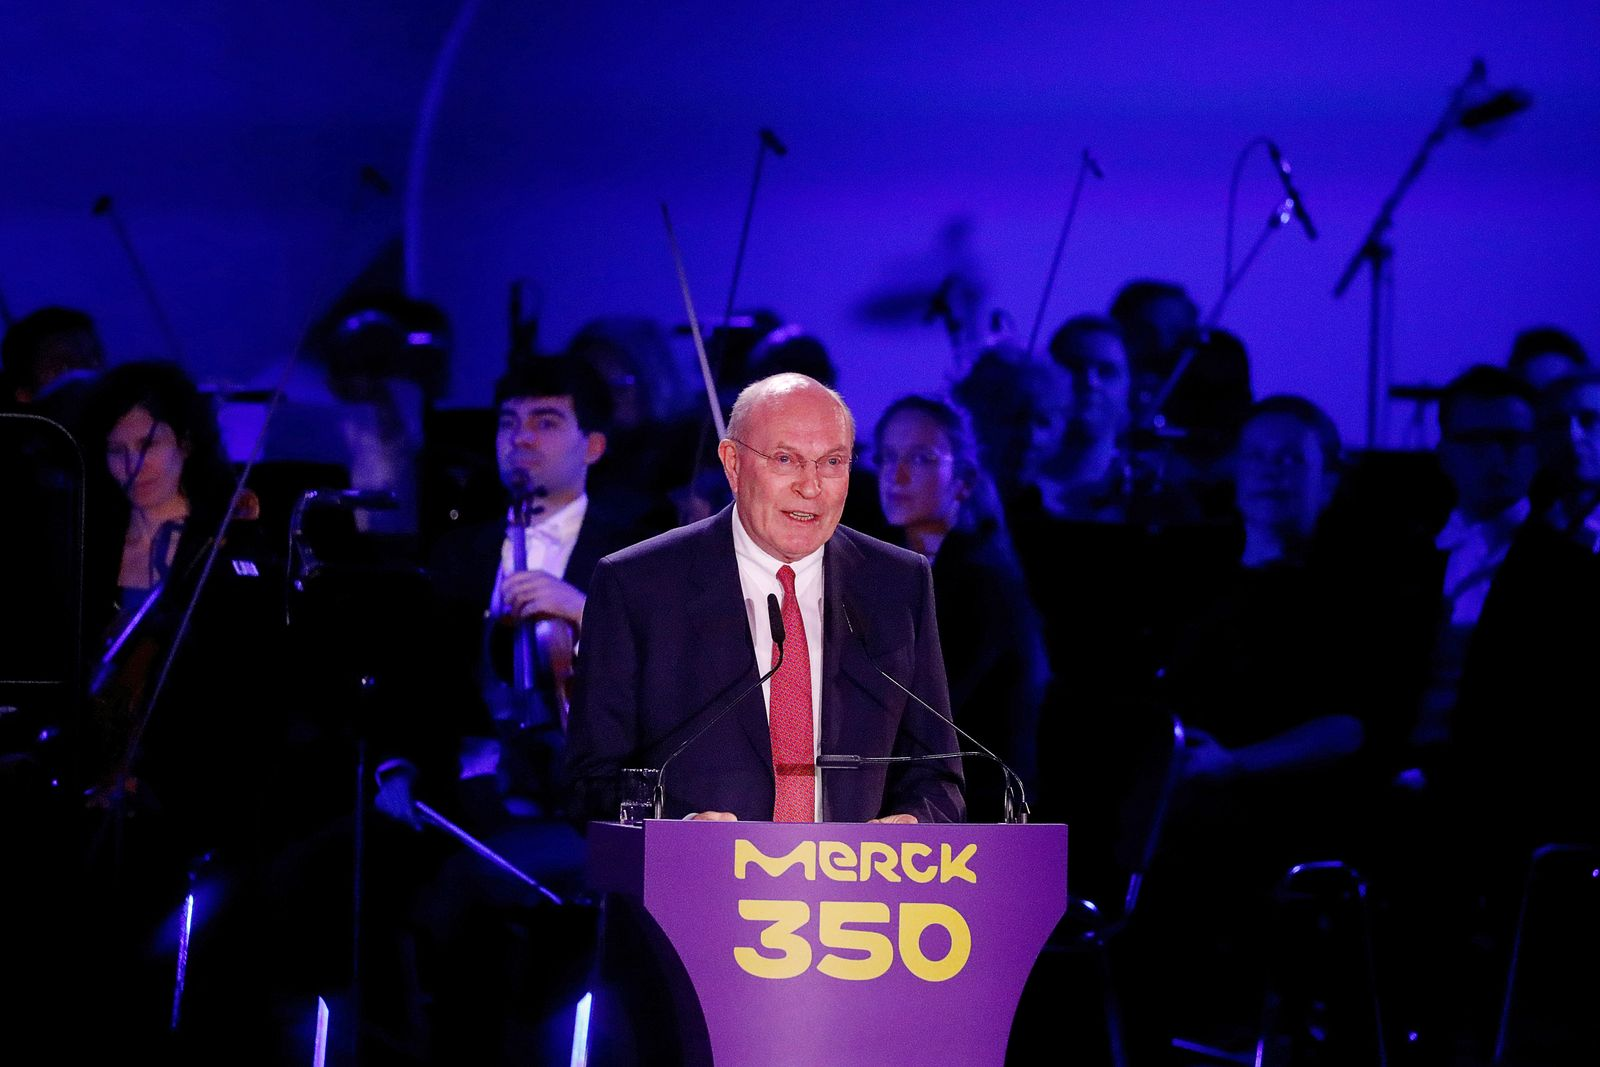 Frank Stangenberg-Haverkamp, Merck's Executive Board chairman, delivers a speech during the celebrations of the 350th anniversary of German pharmaceuticals company Merck, in Darmstadt